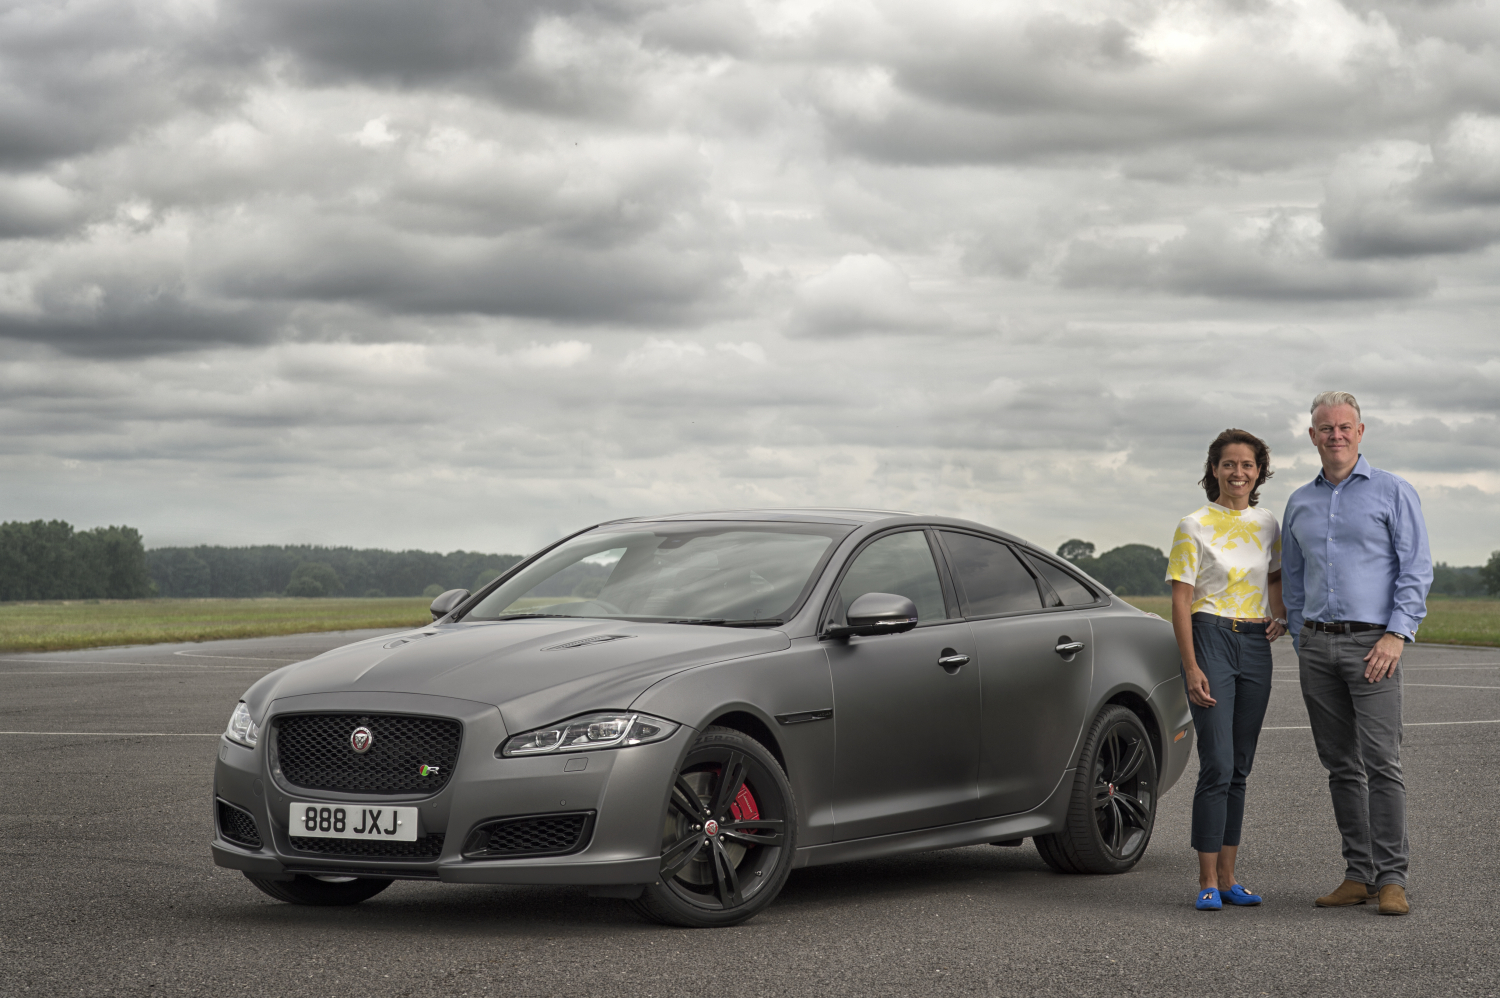 NEW JAGUAR XJR575 HOSTS 186MPH INTERVIEW - Amanda Stretton, TV presenter and race driver, with Wayne Burgess, Production Studio Director and SVO Projects, Jaguar